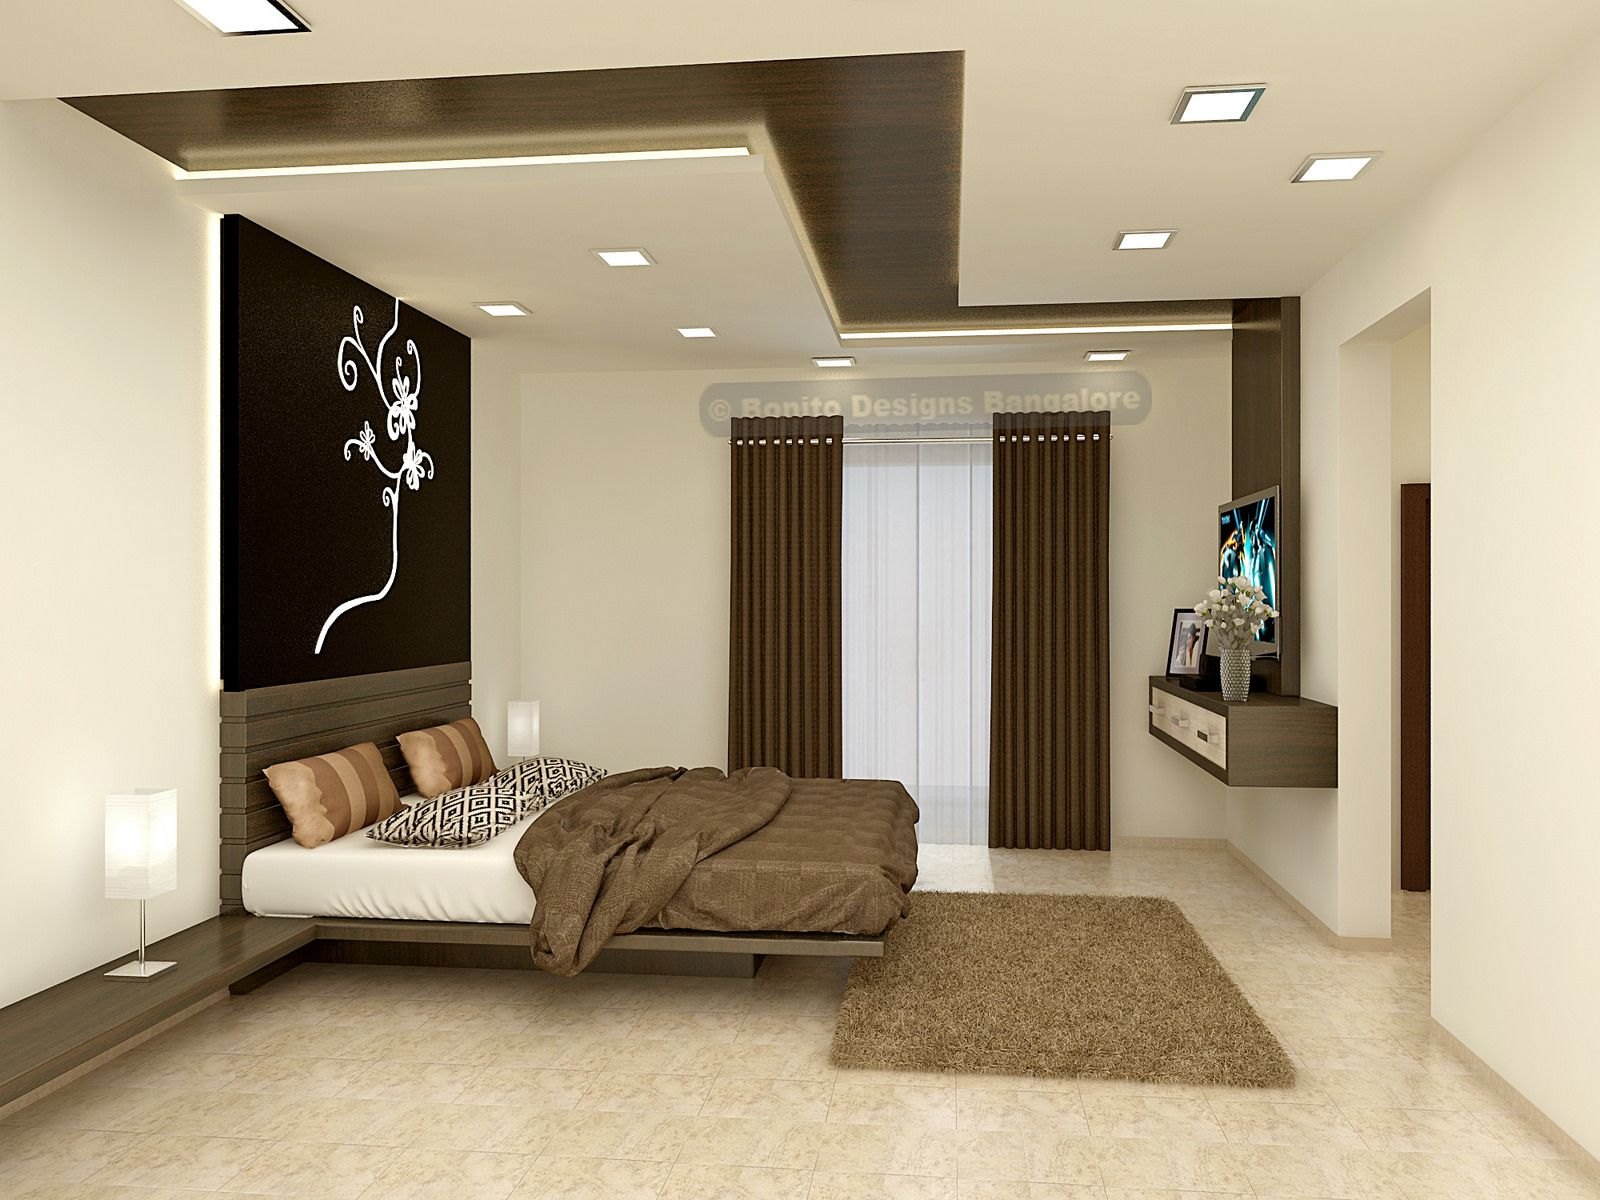 Sandepmbr 1 ceilings bedrooms and ceiling - Bedroom style for small space model ...